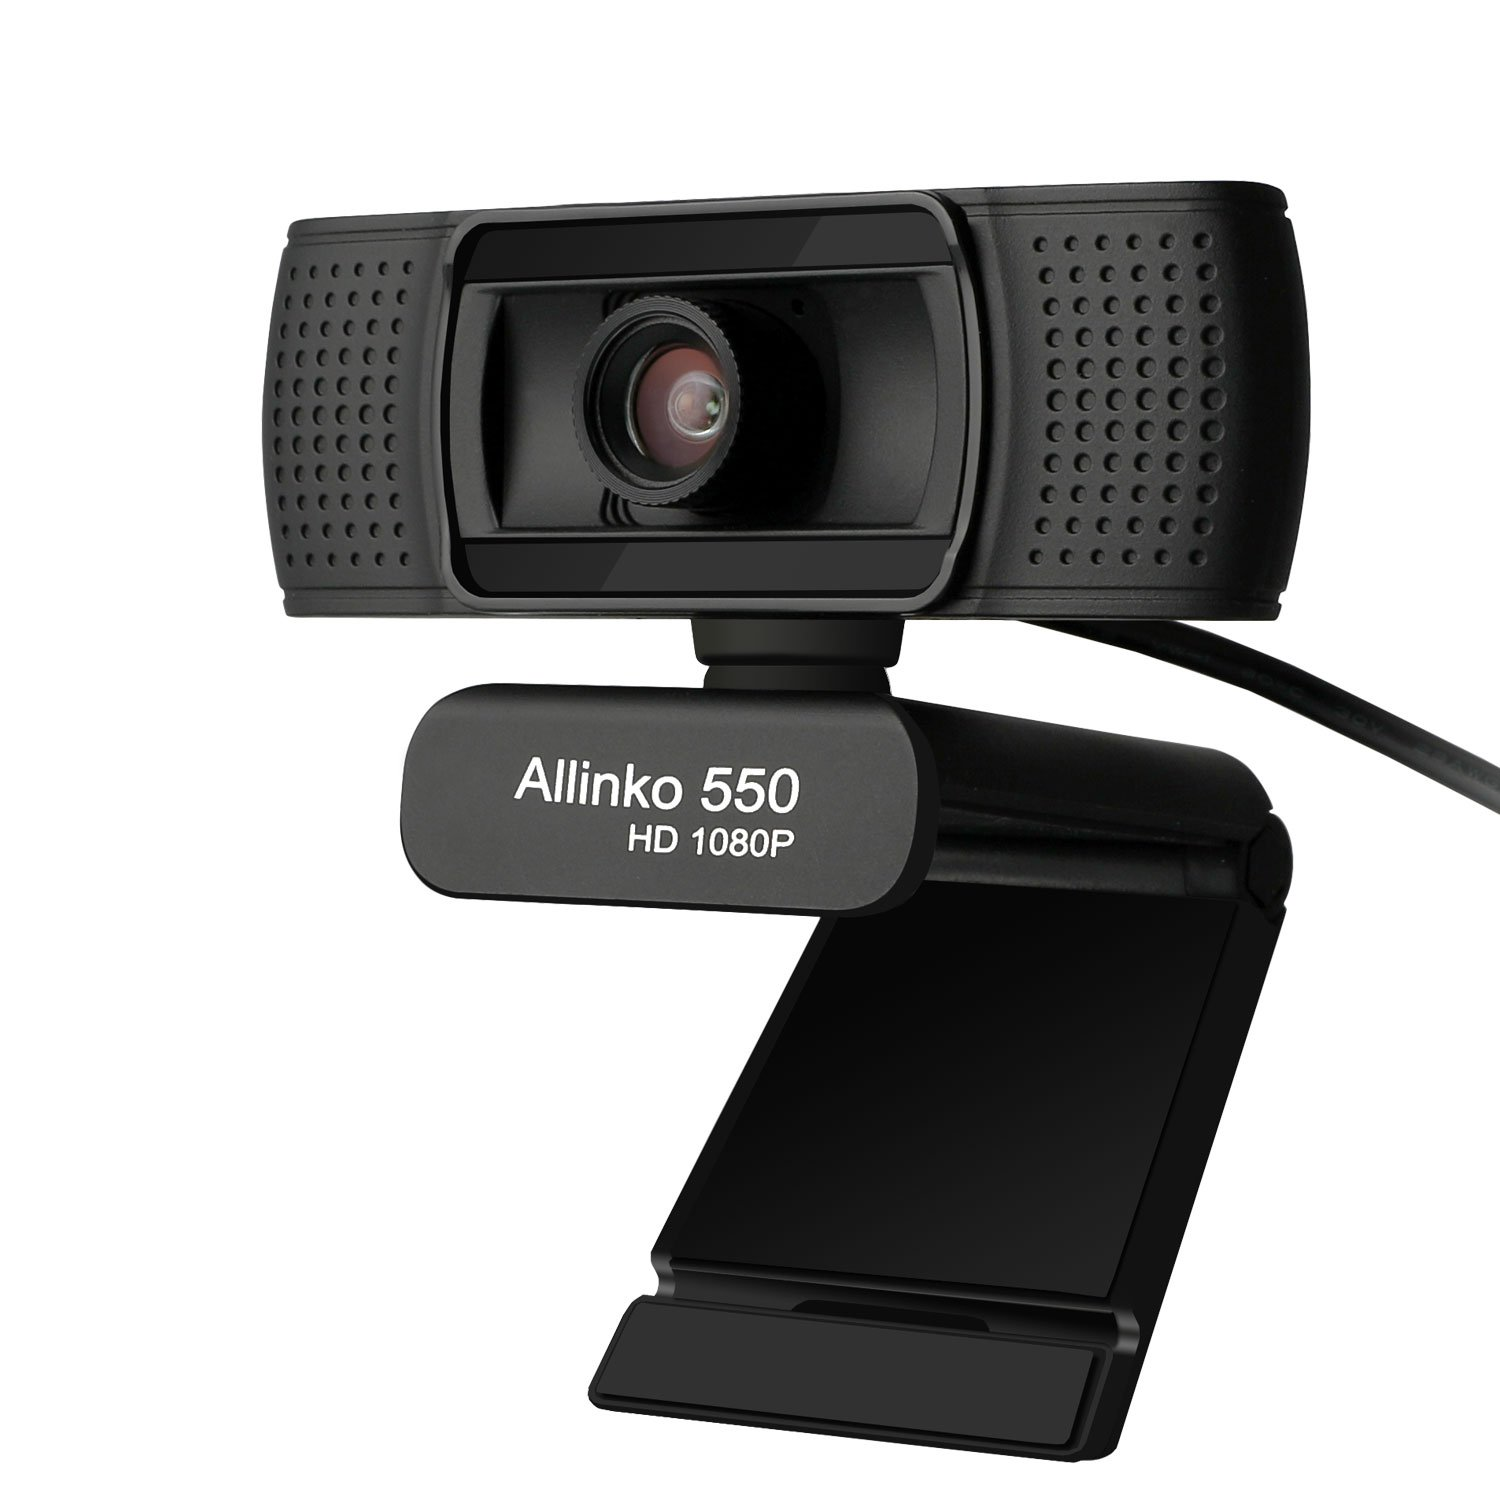 Allinko 550 Webcam 1080P Full HD, USB Web Camera with Microphone Compatible with Windows 10 8 7 XP Mac OS X, Skype Webcams for Laptop PC iMac Macbook Pro, Plug and Play Webcams